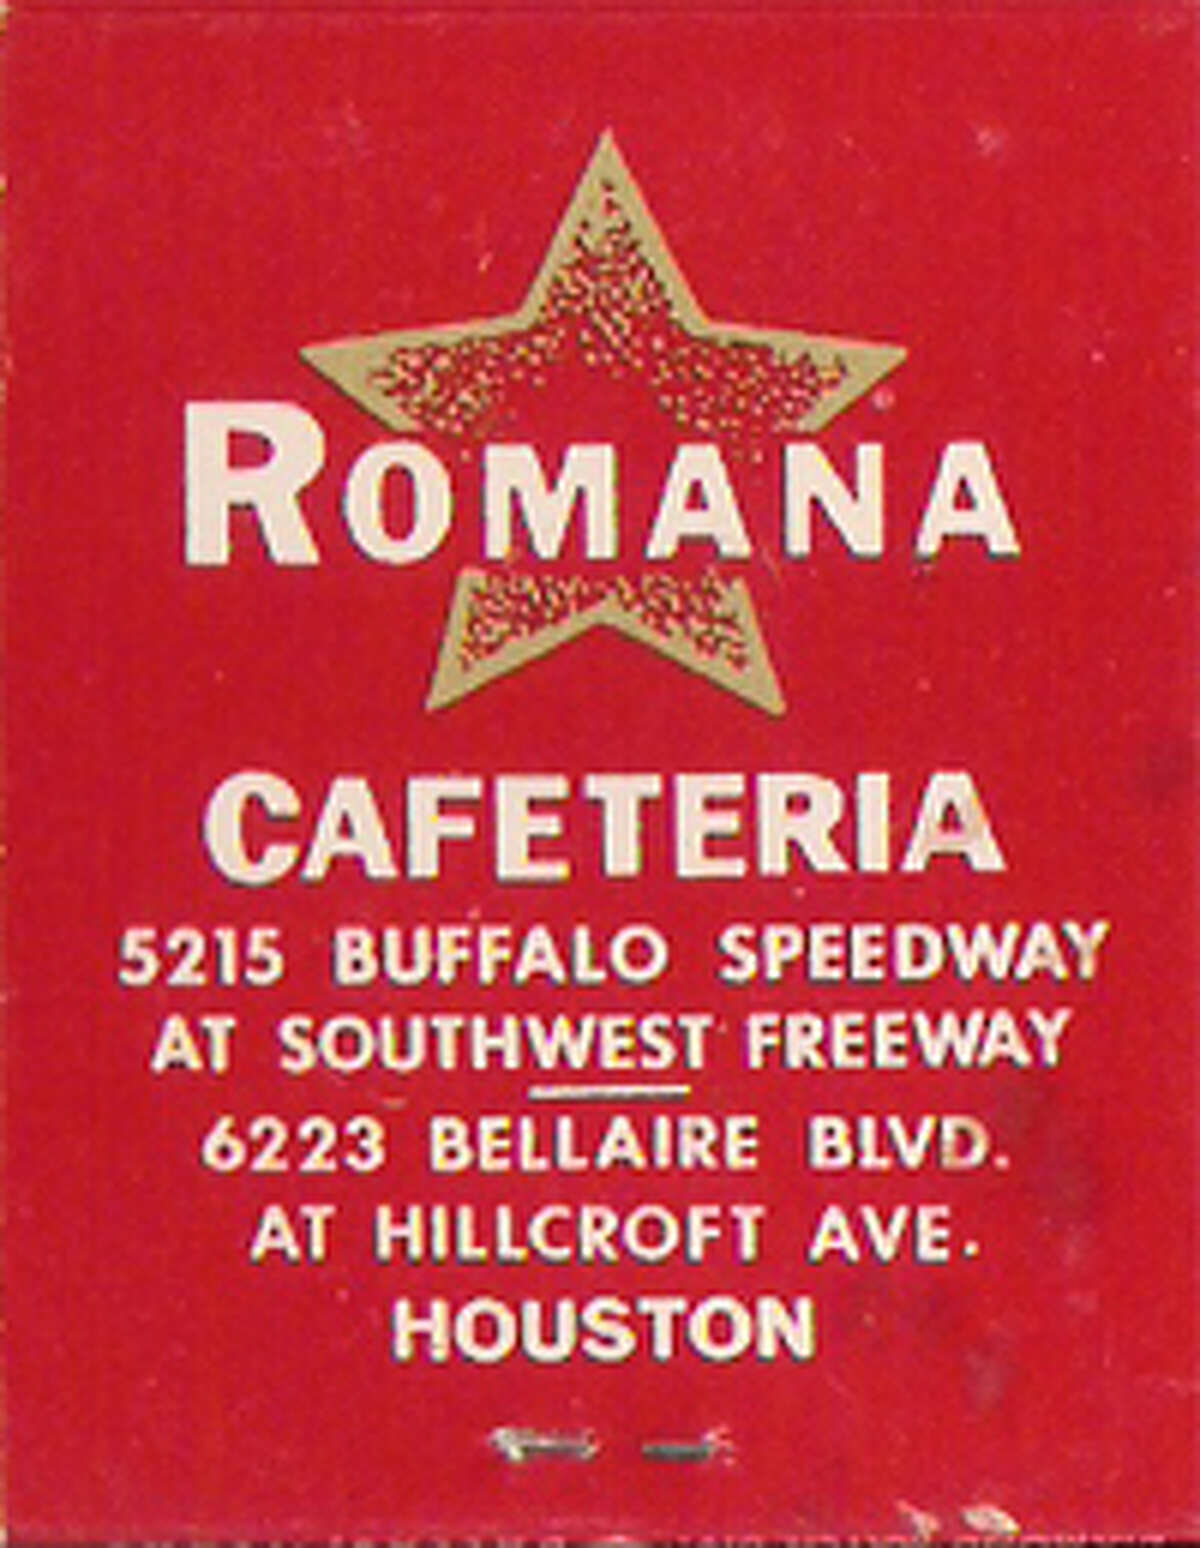 Luby's entered Houston for the first time when it opened Romana Cafeteria in 1965.